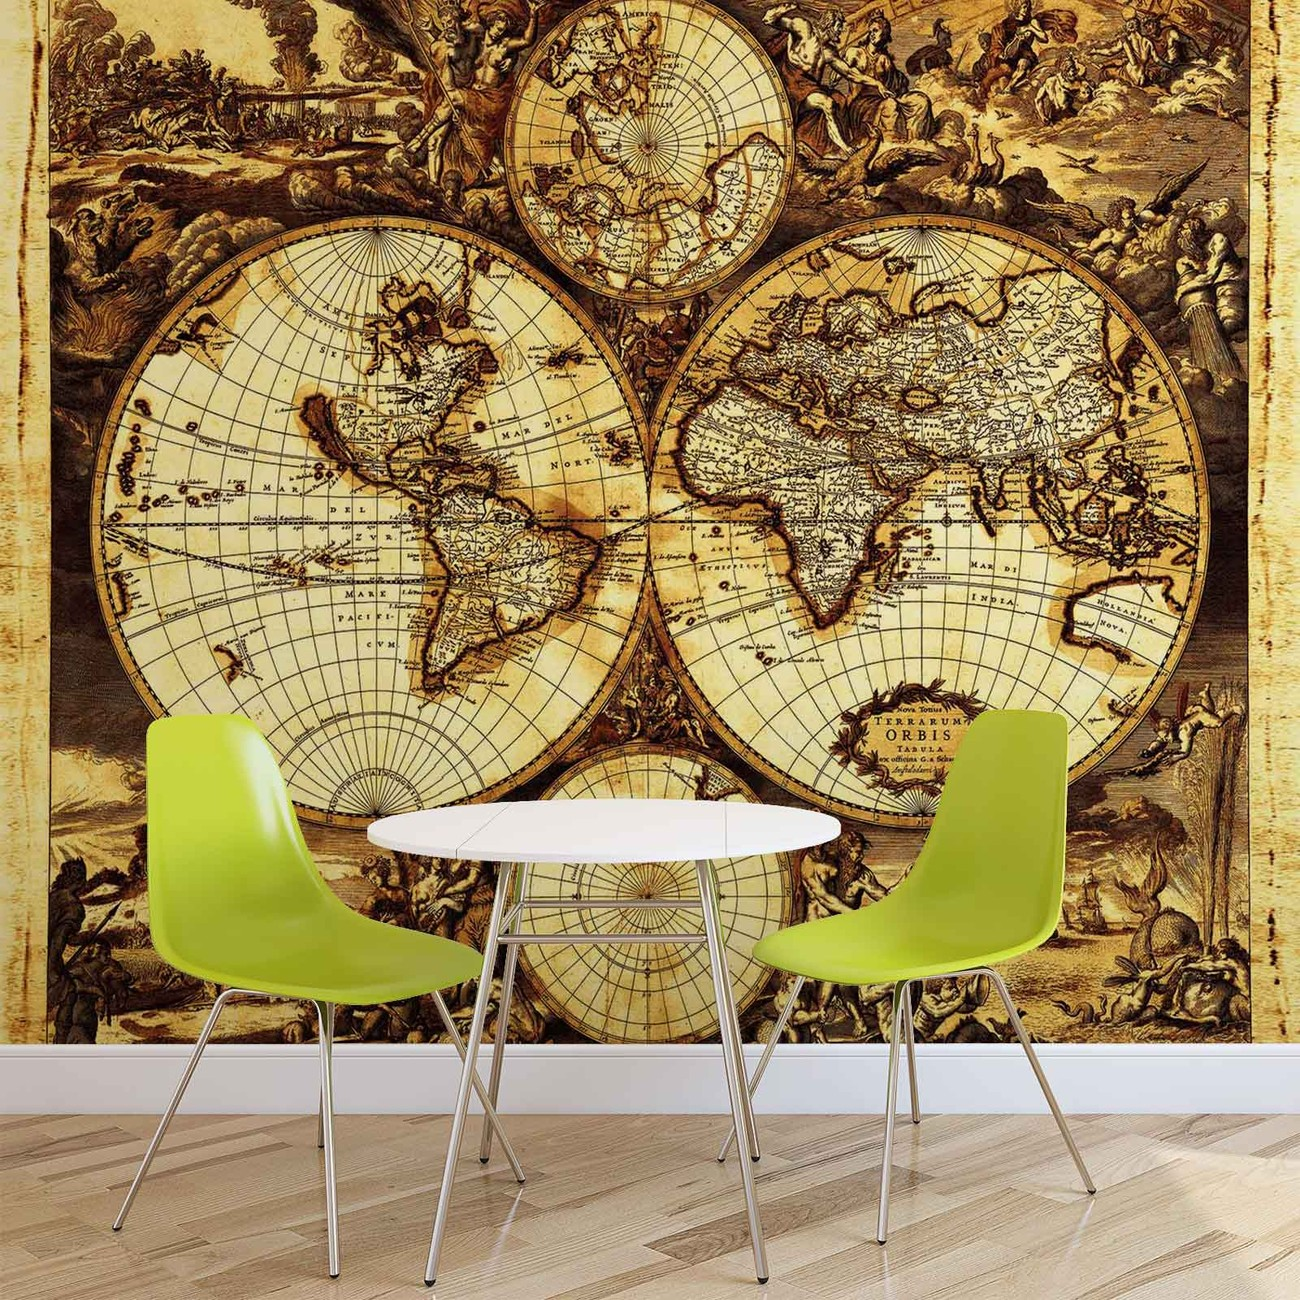 World map vintage wall paper mural buy at europosters for Antique world map wall mural